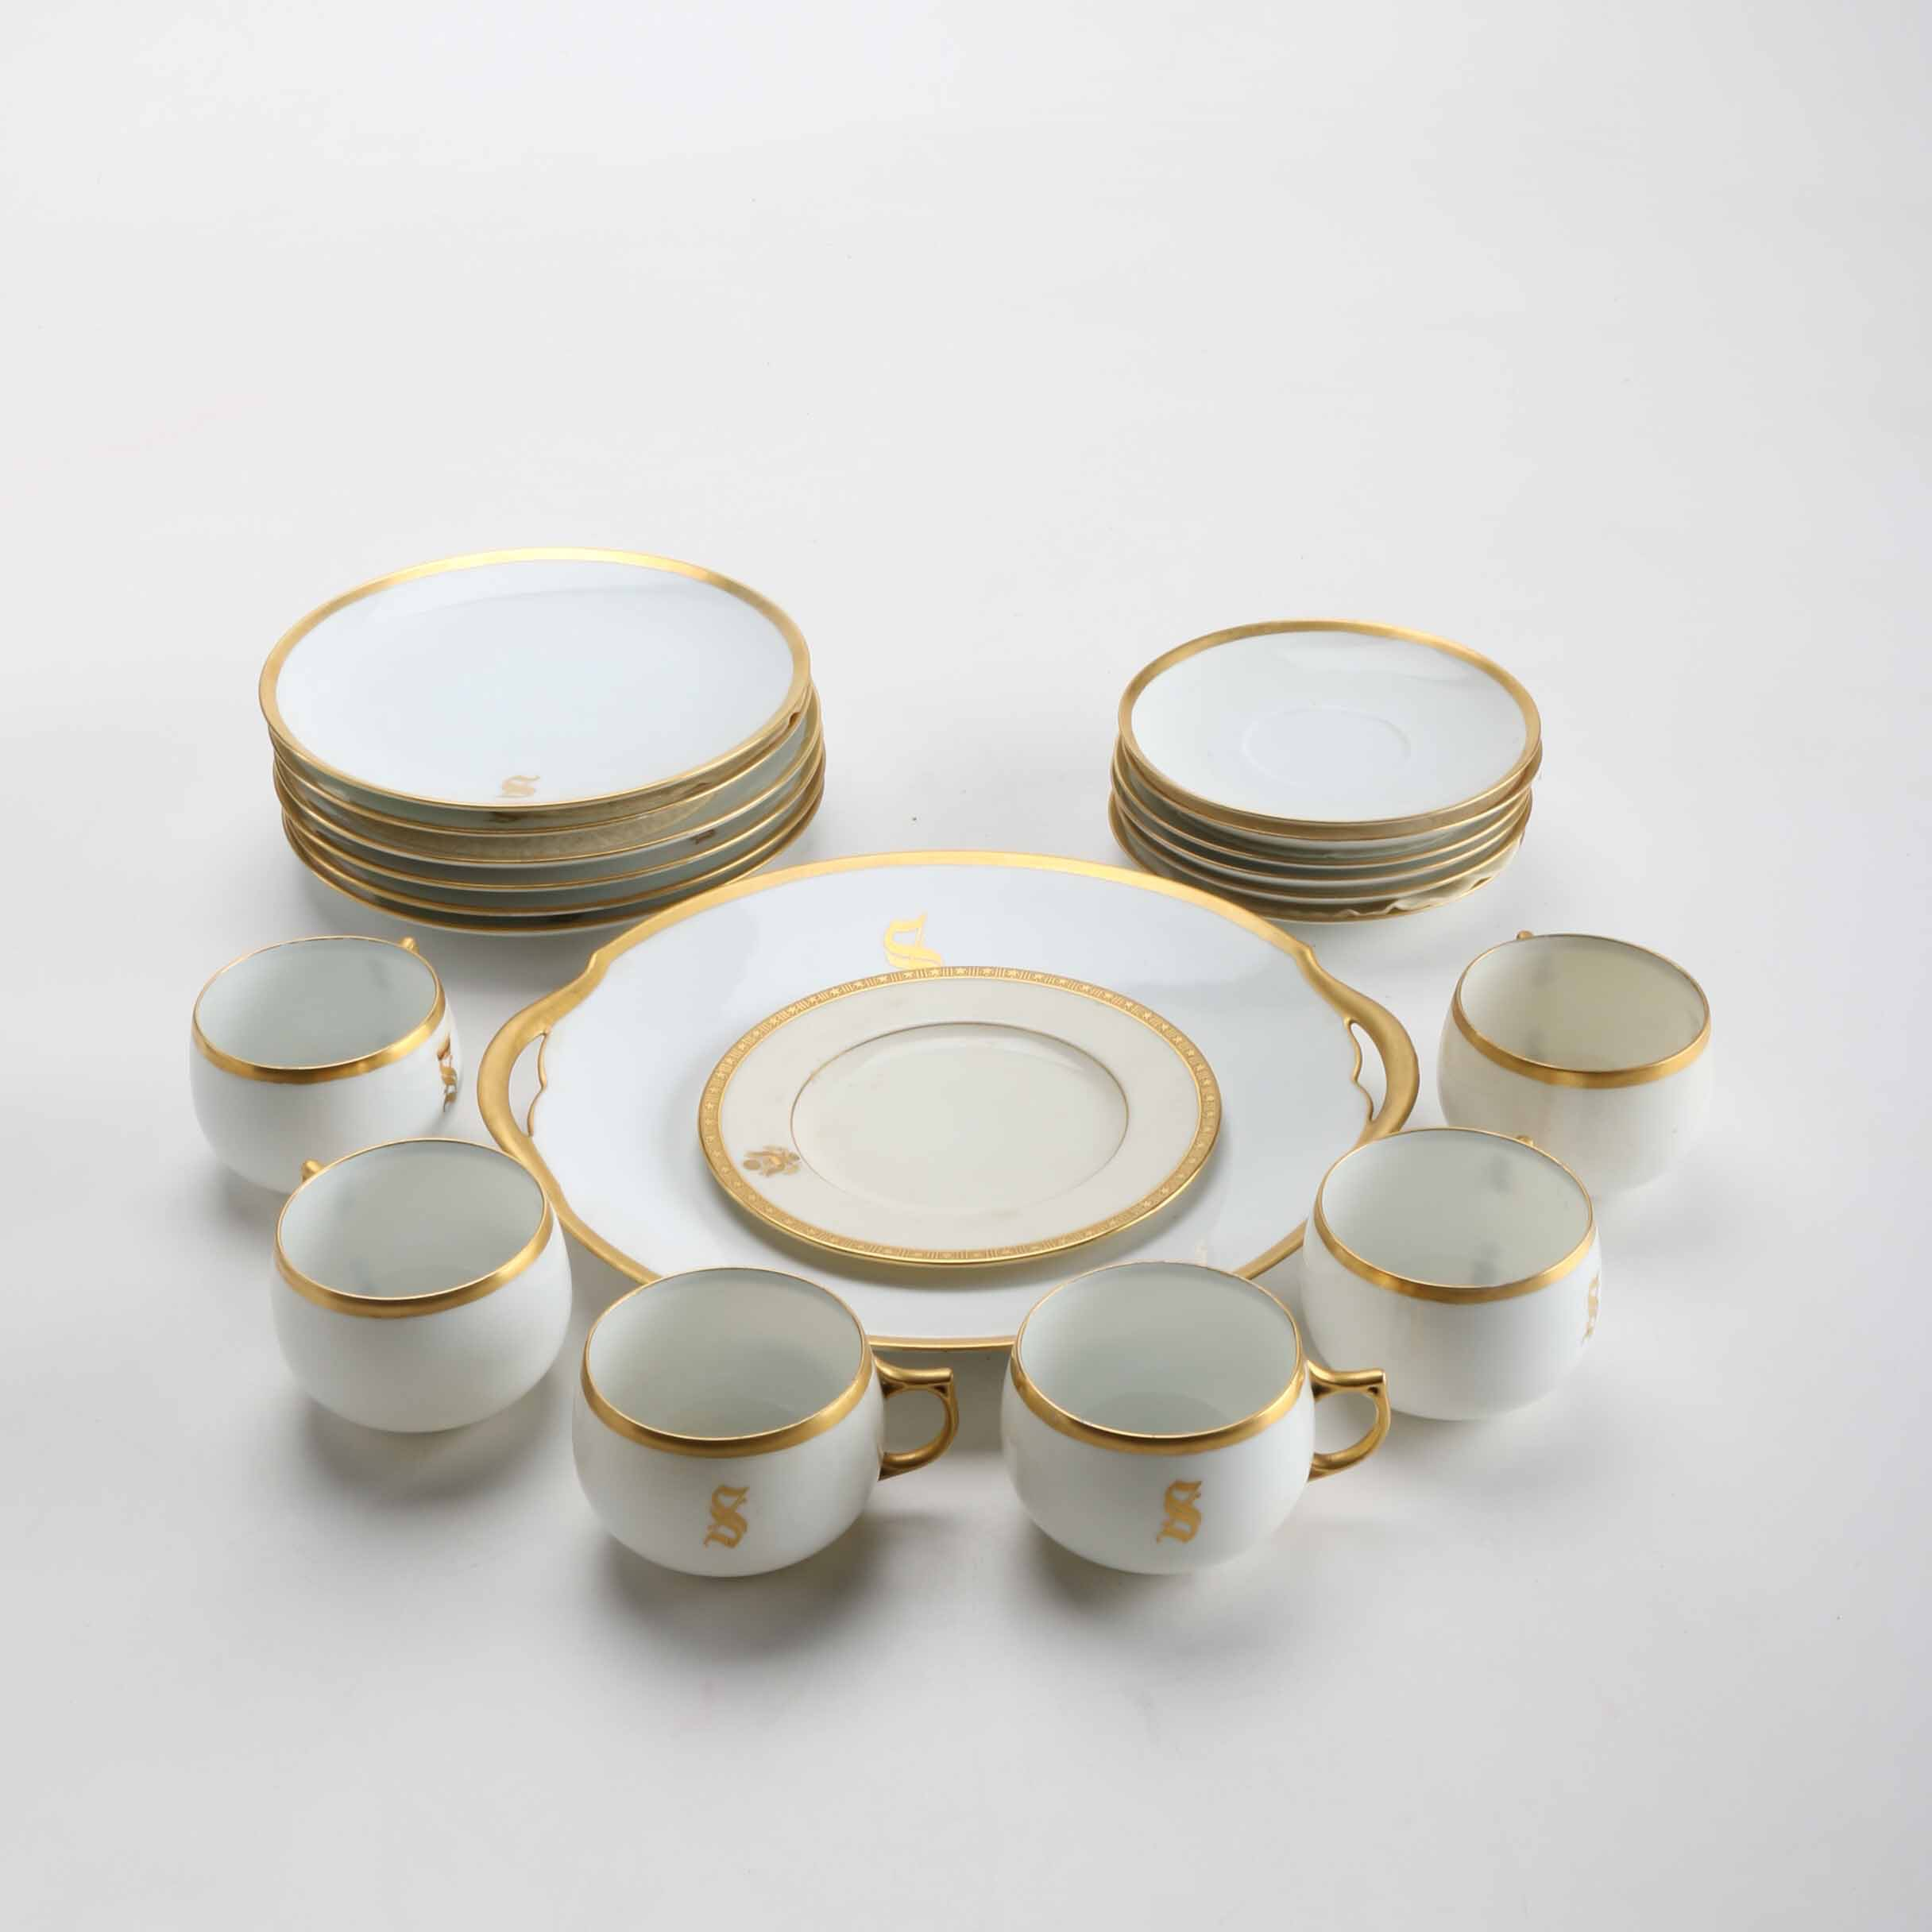 Grouping of White and Gold Tone Dinnerware